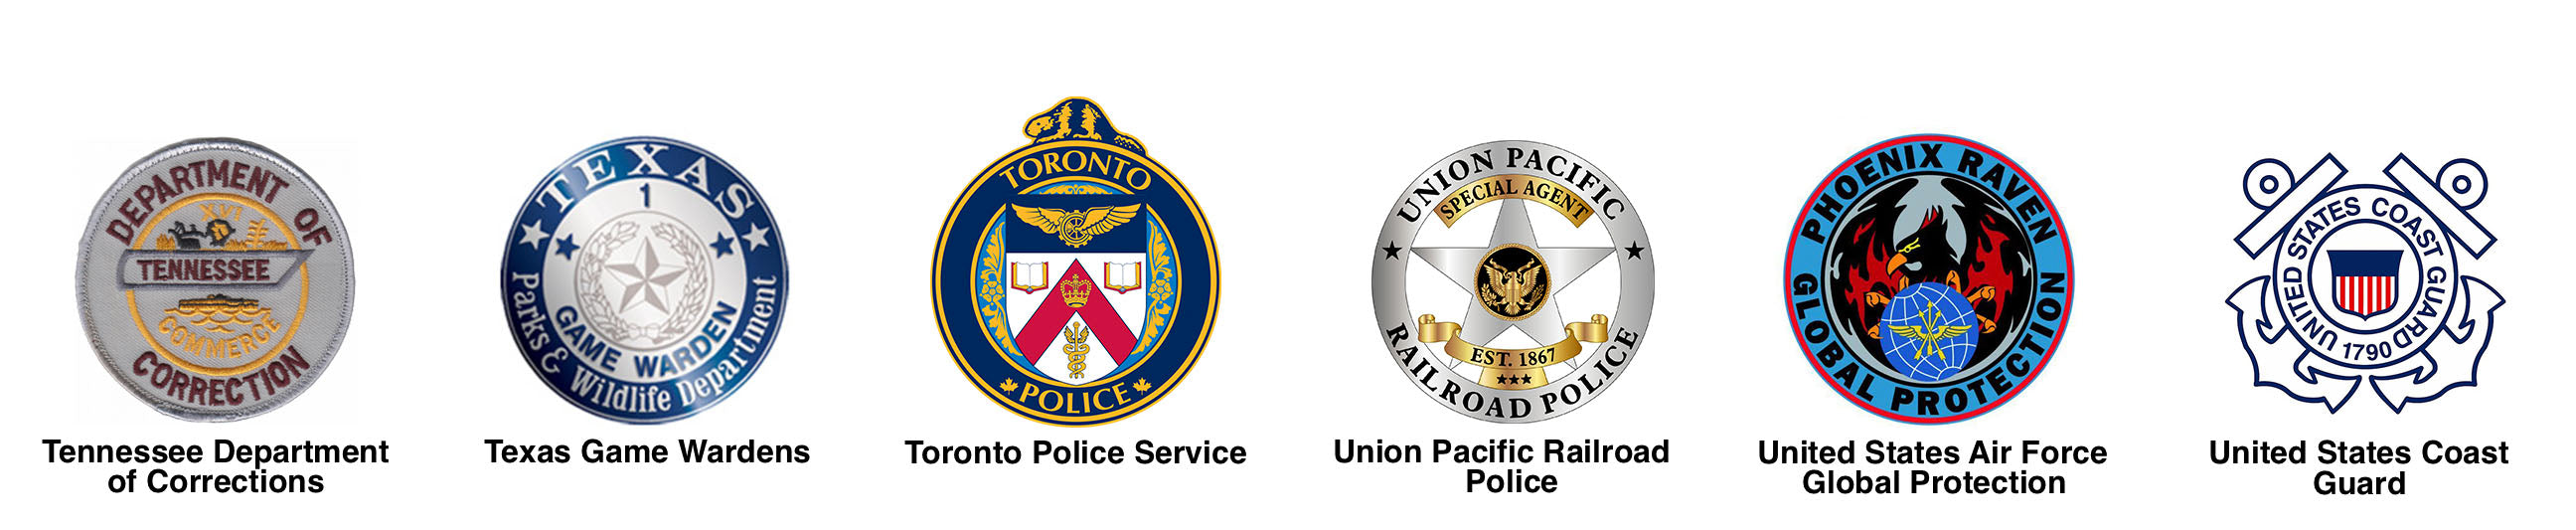 Tennessee Department of Corrections, Texas Game Wardens, Toronto Police Service, Union Pacific Railroad Police, United States Air Force Global Protection, United States Coast Guard